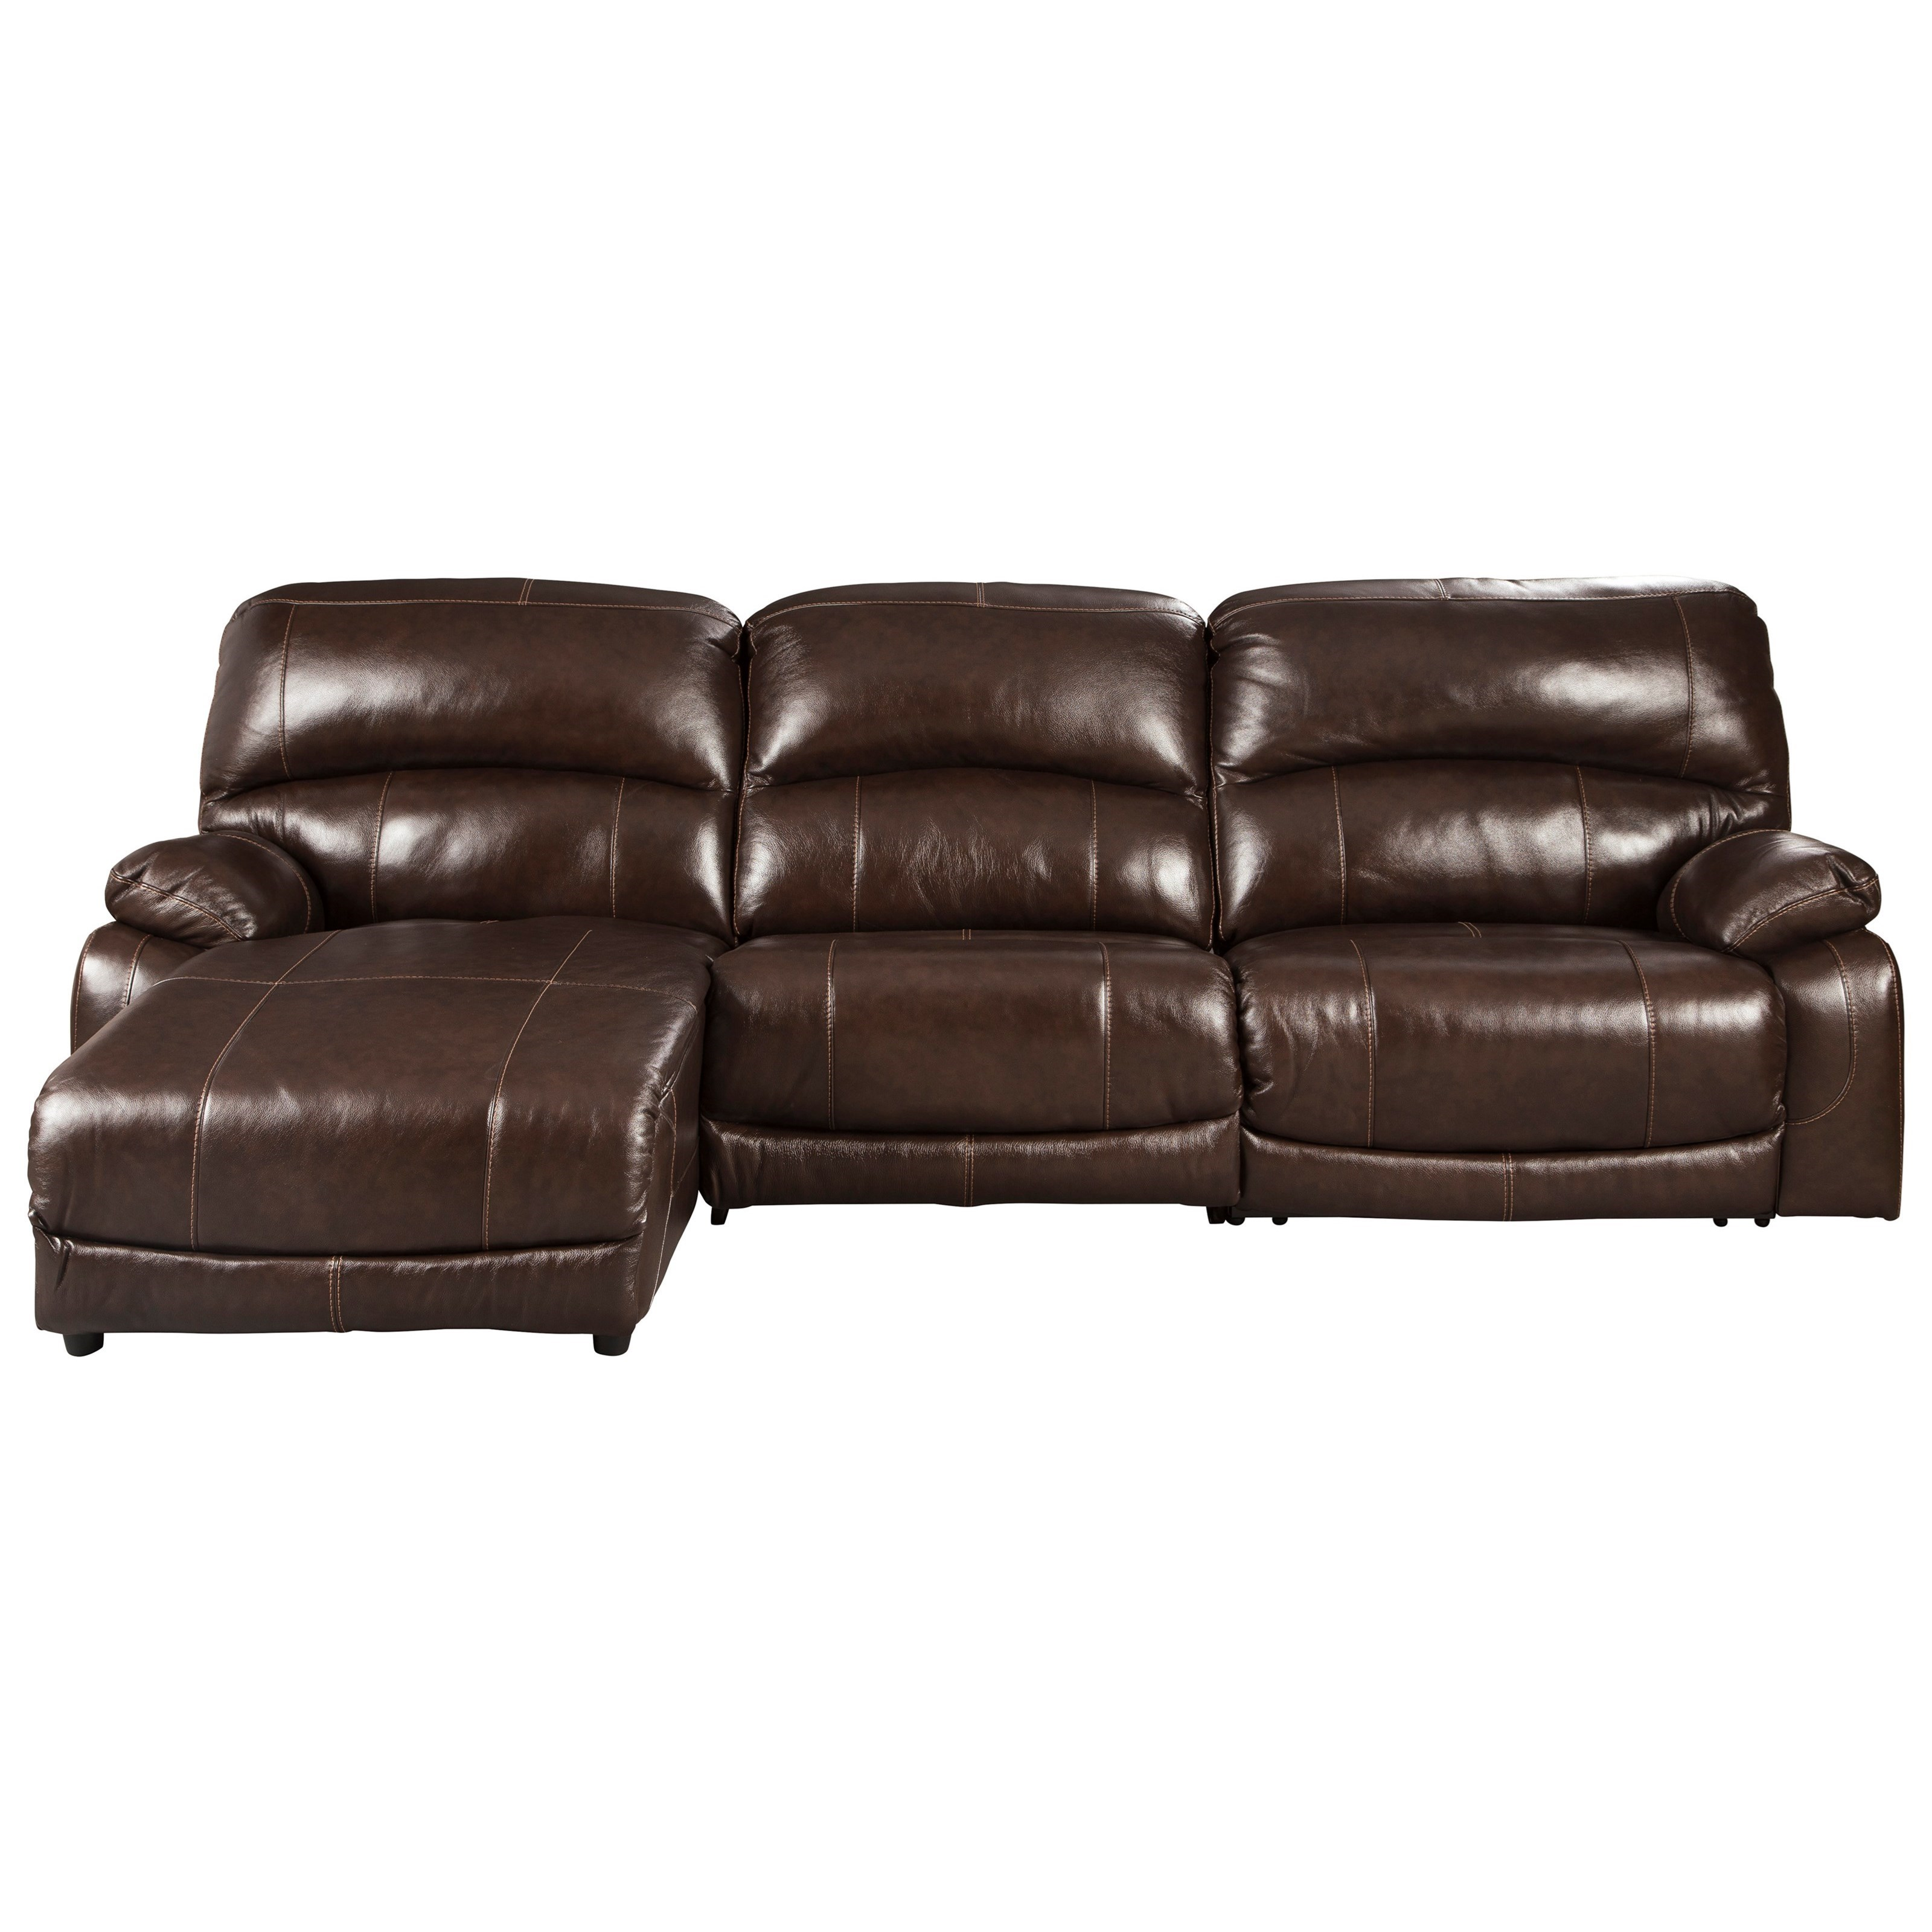 Leather Match 3-Piece Reclining Sectional with Left Chaise